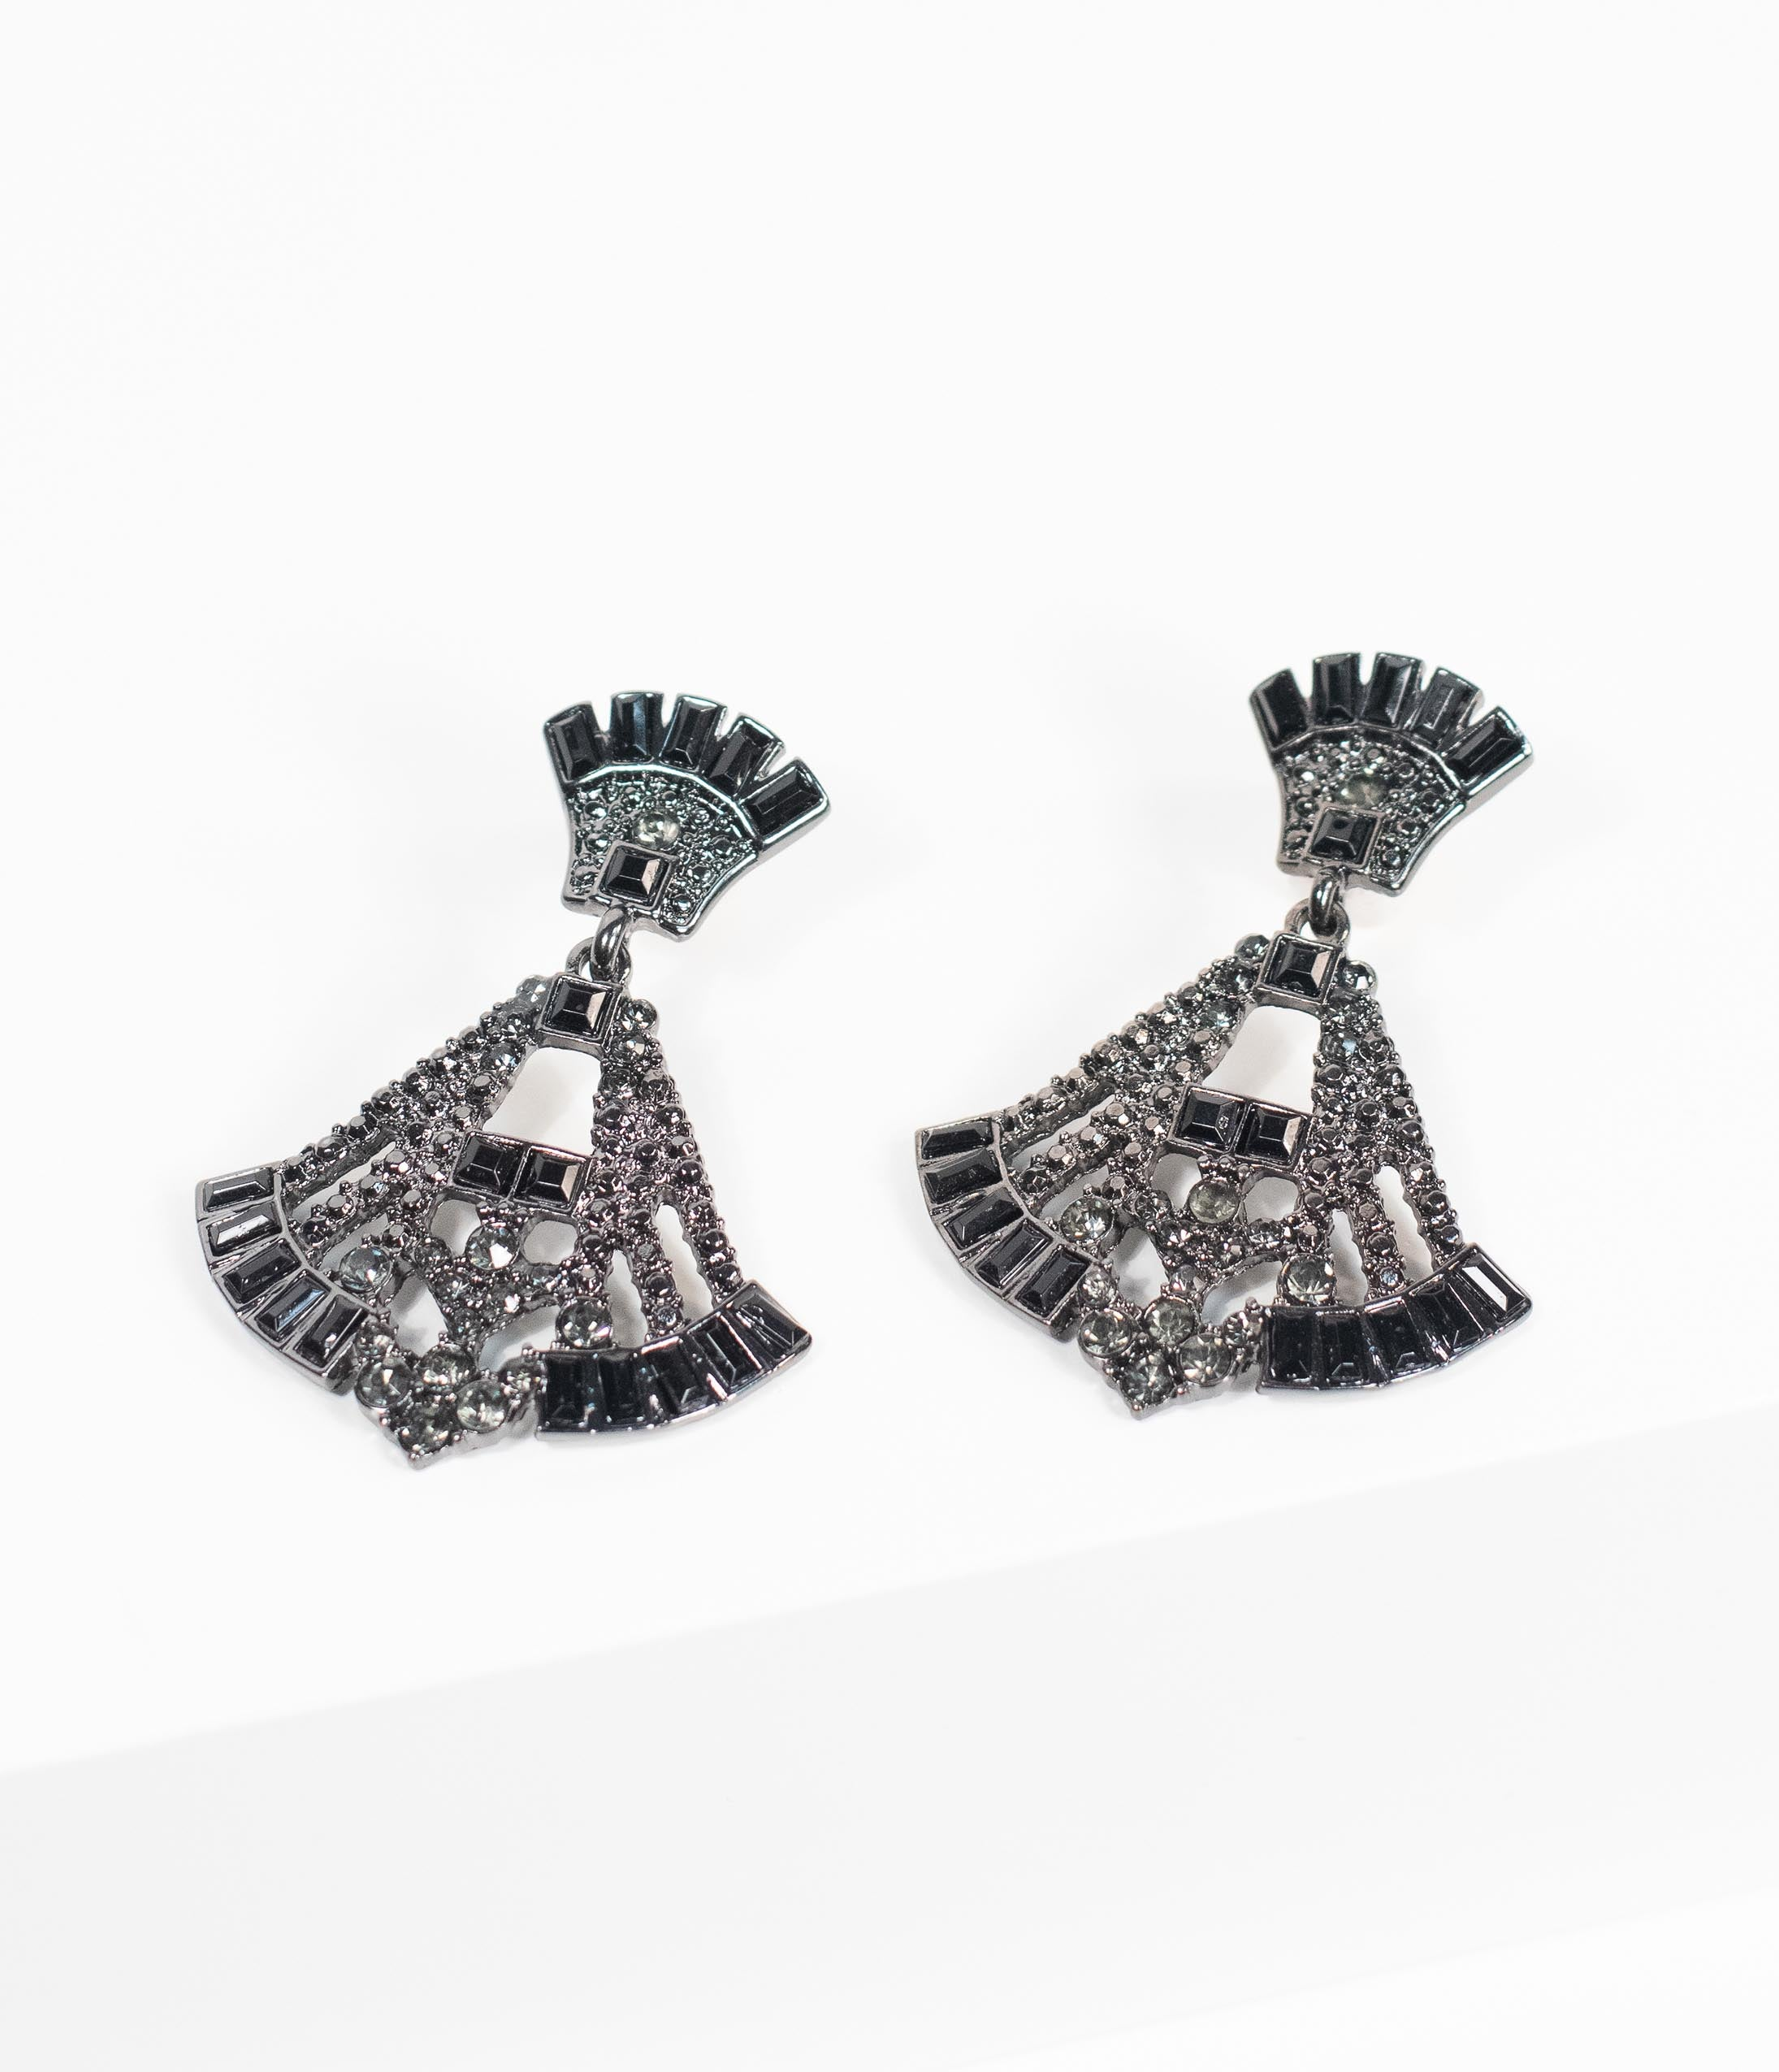 Vintage Style Jewelry, Retro Jewelry Deco Style Black Rhinestone Drop Fan Earrings $26.00 AT vintagedancer.com